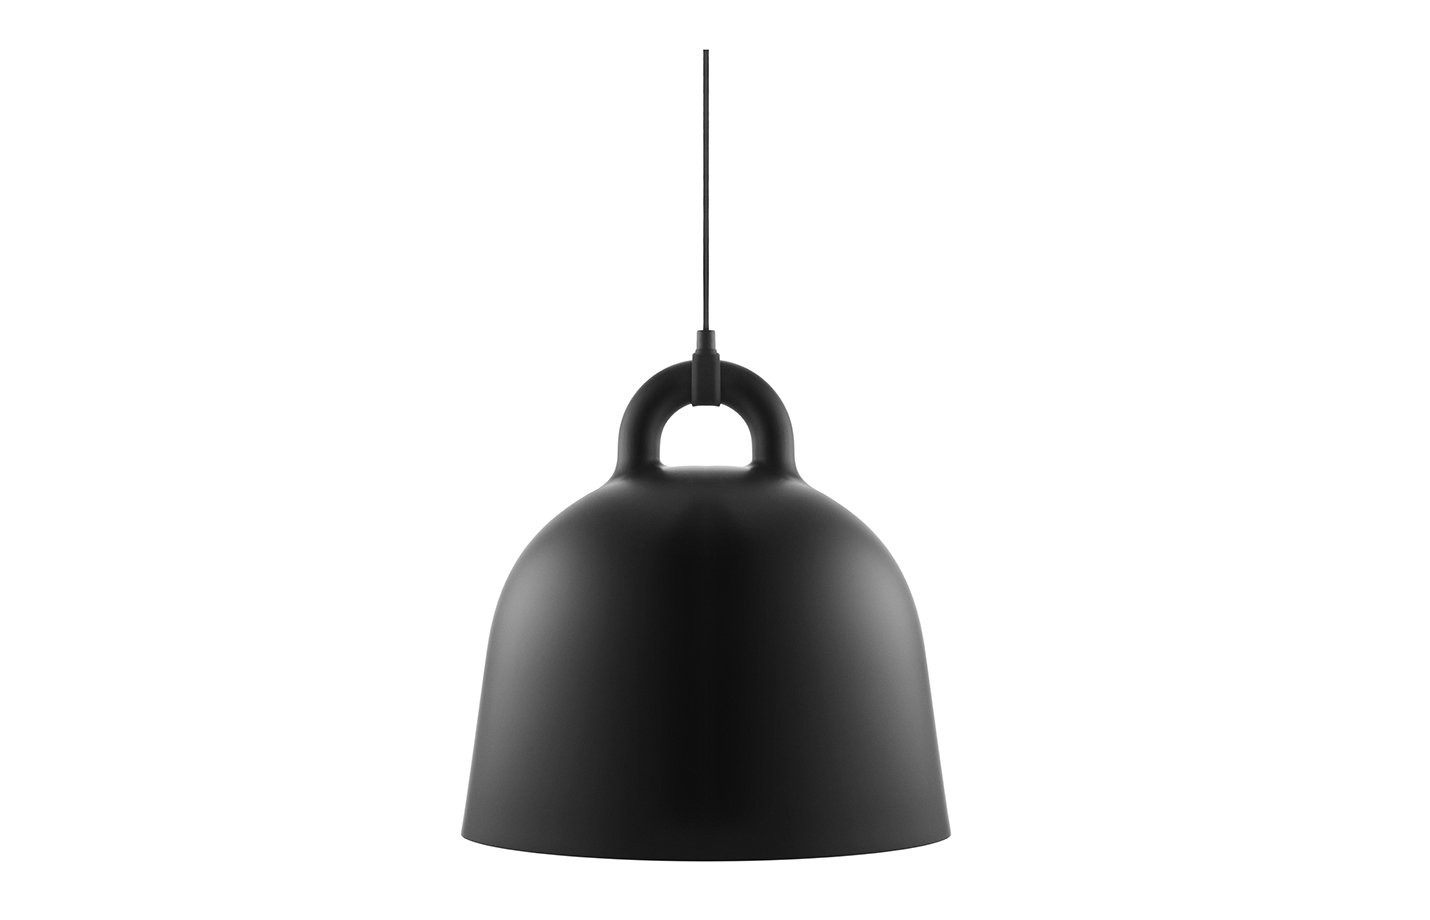 Bell Lamp Pendant Light – Black